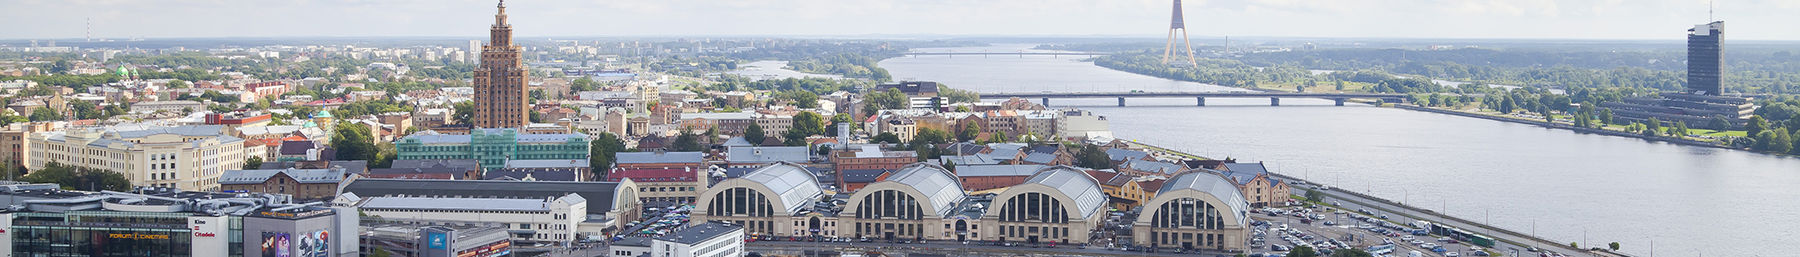 Riga Central Market, five pavilions constructed by reusing old German Zeppelin hangars